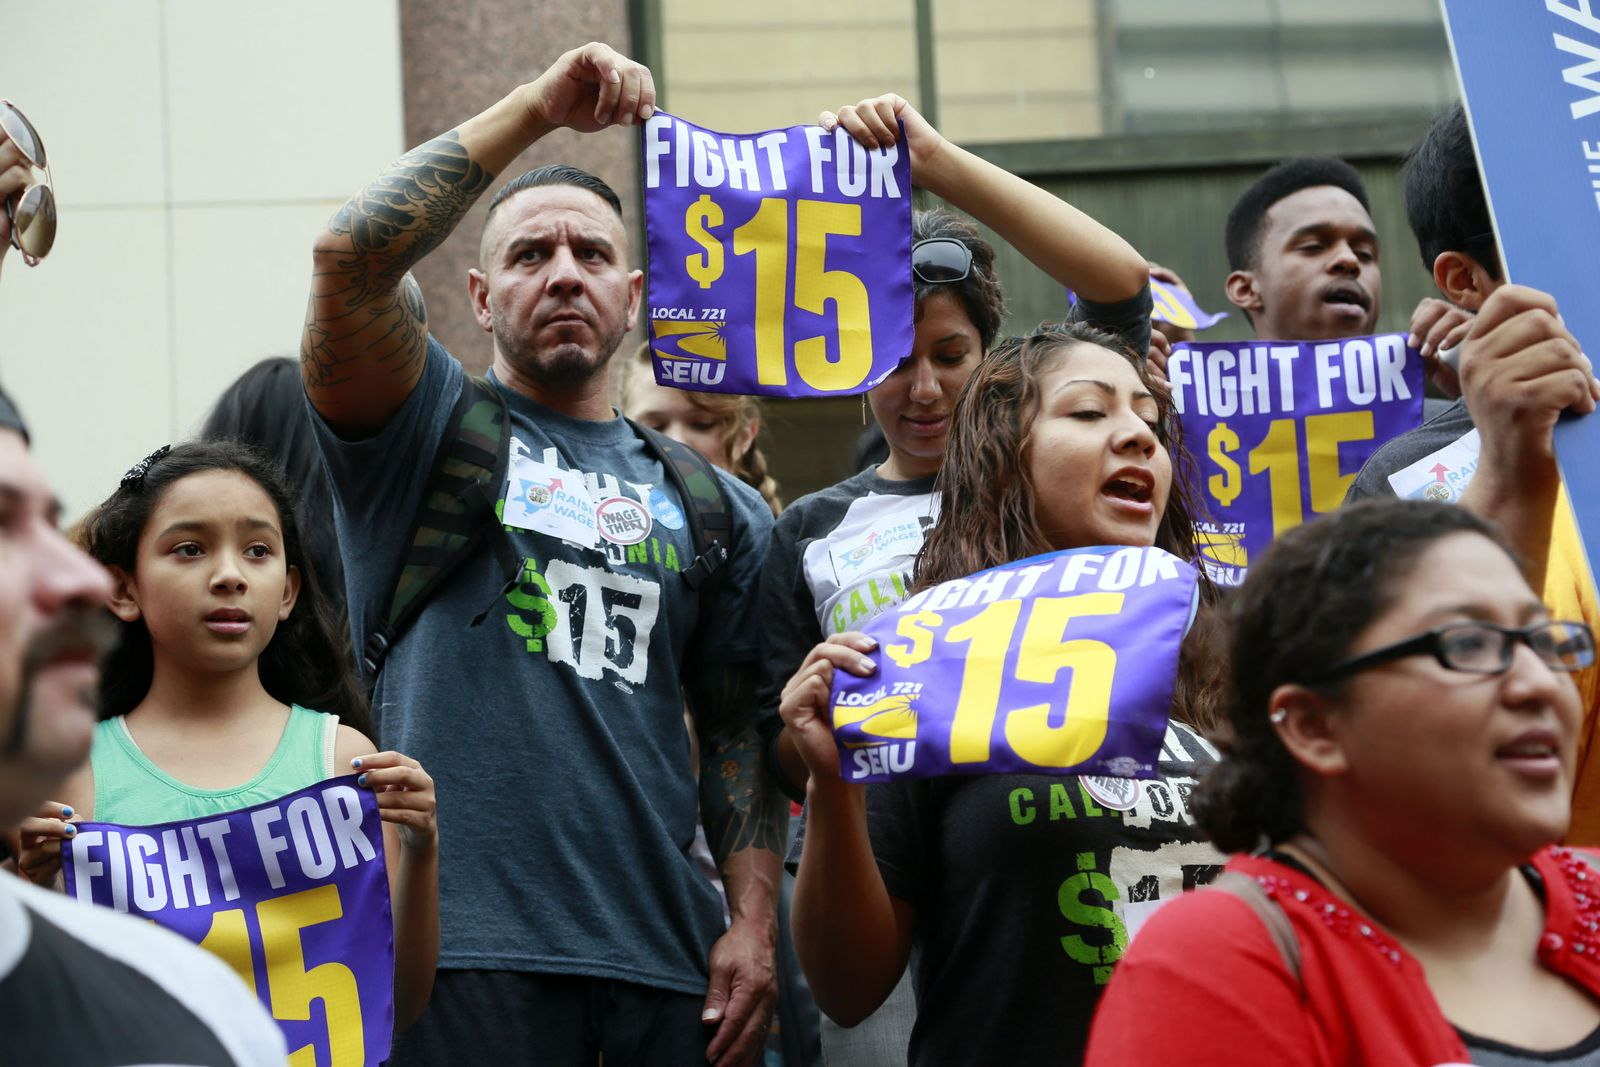 Minimum Wage California Mindestlohn Kalifornien